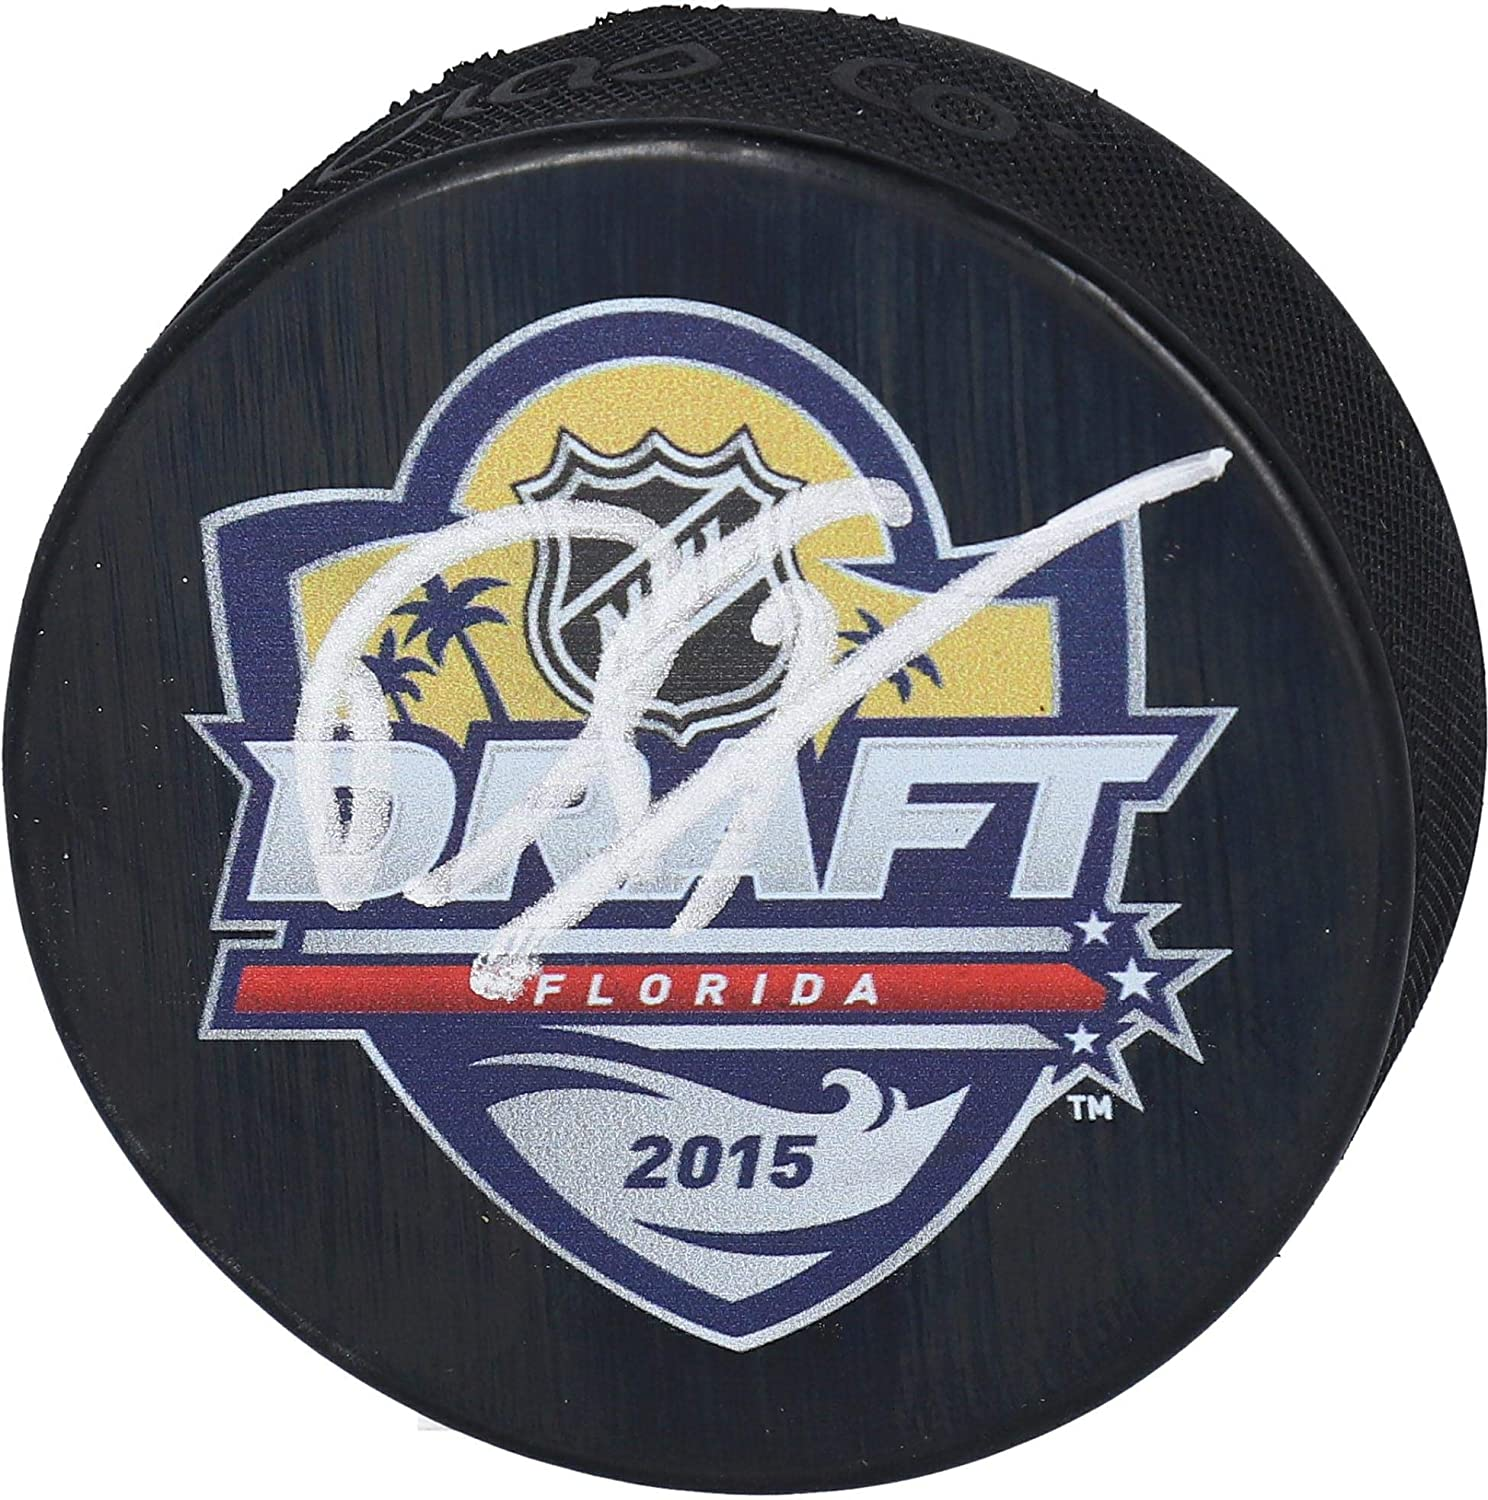 Dylan Strome Chicago Blackhawks Autographed 2015 NHL Draft Logo Hockey Puck - Fanatics Authentic Certified